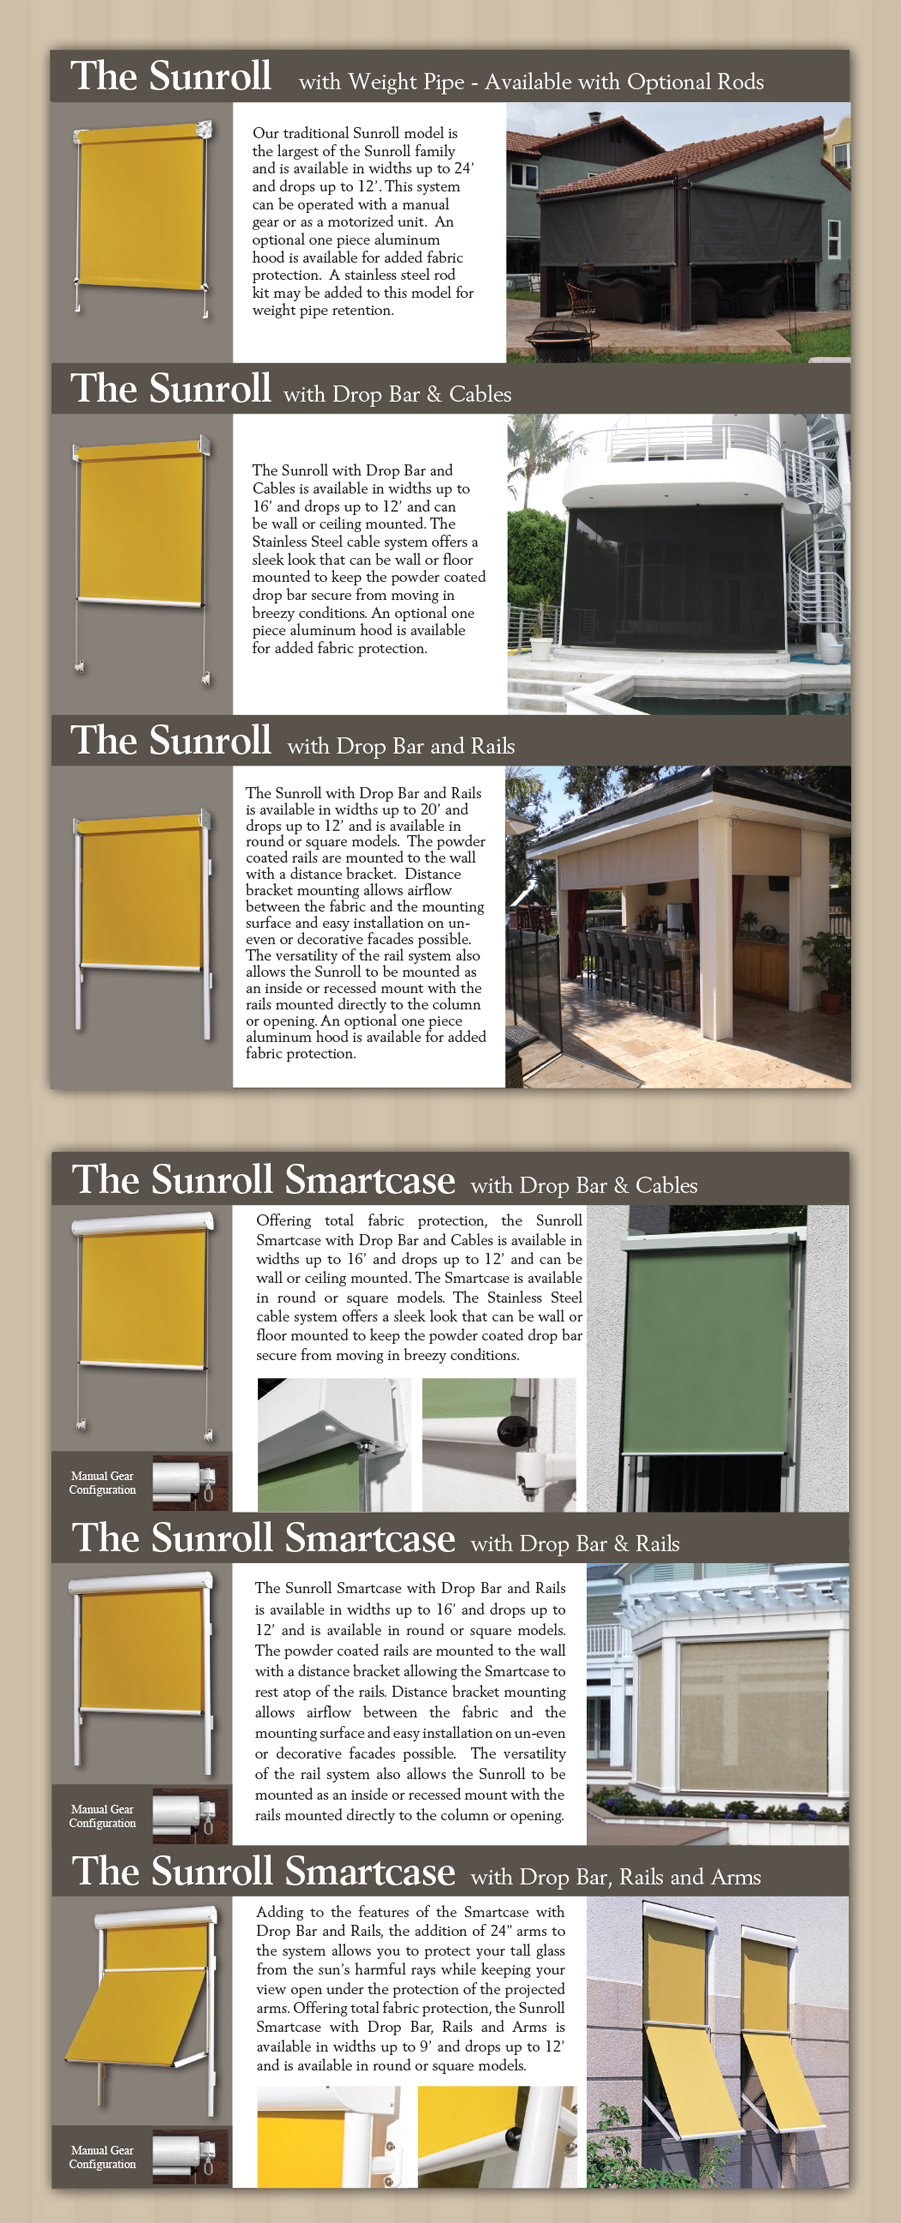 sunroll-brochure-pgs-2-3-web